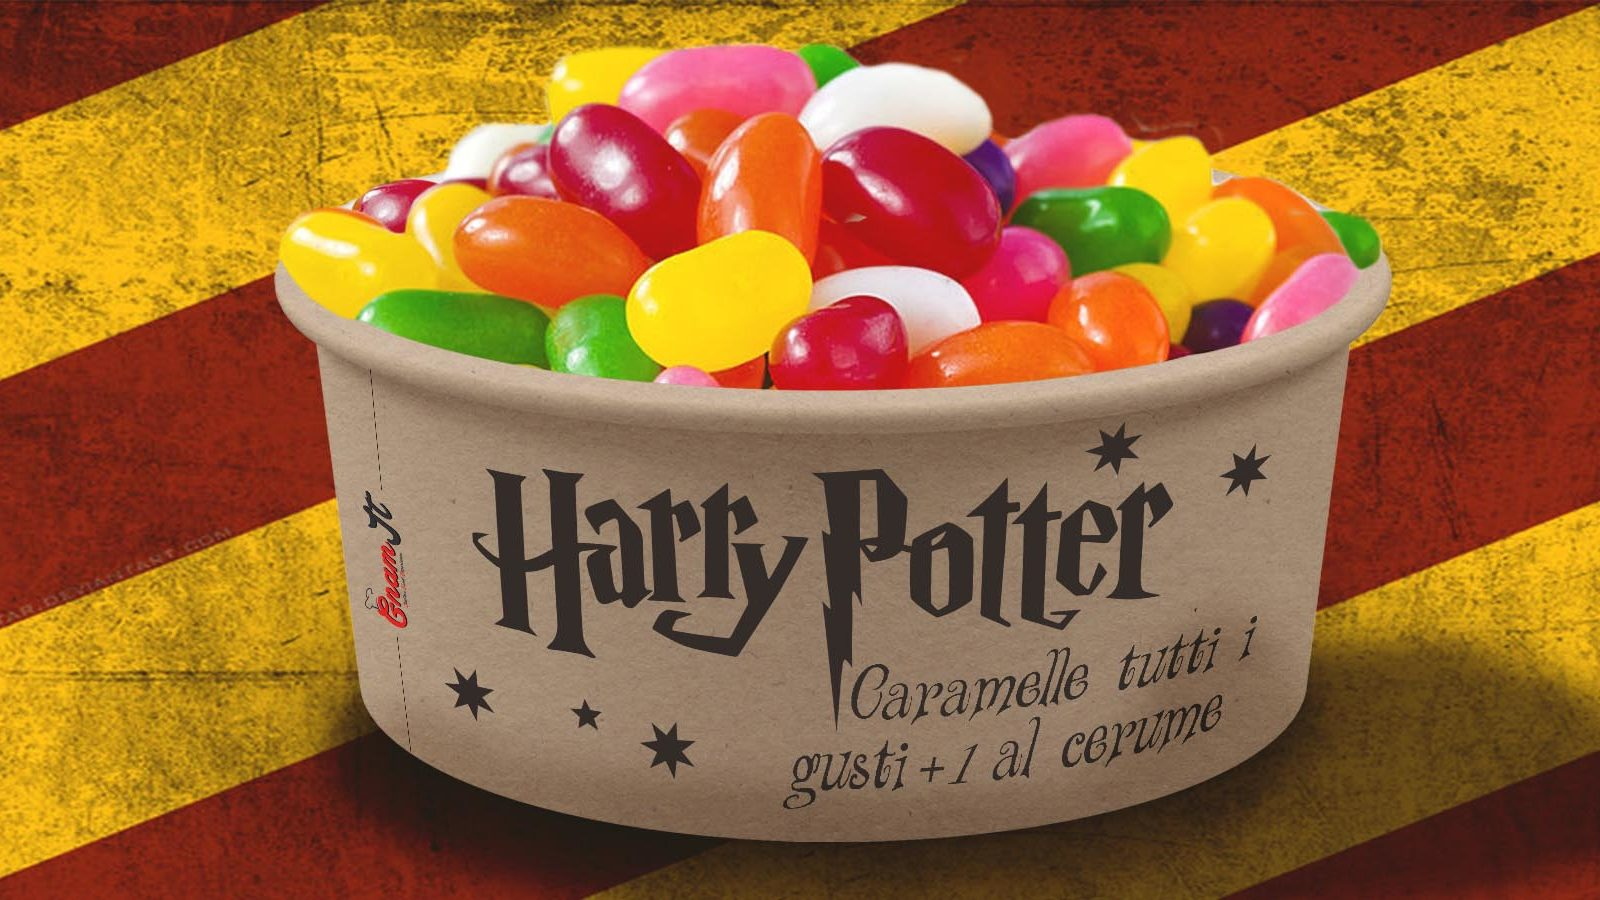 gelatine film Harry potter gnamit